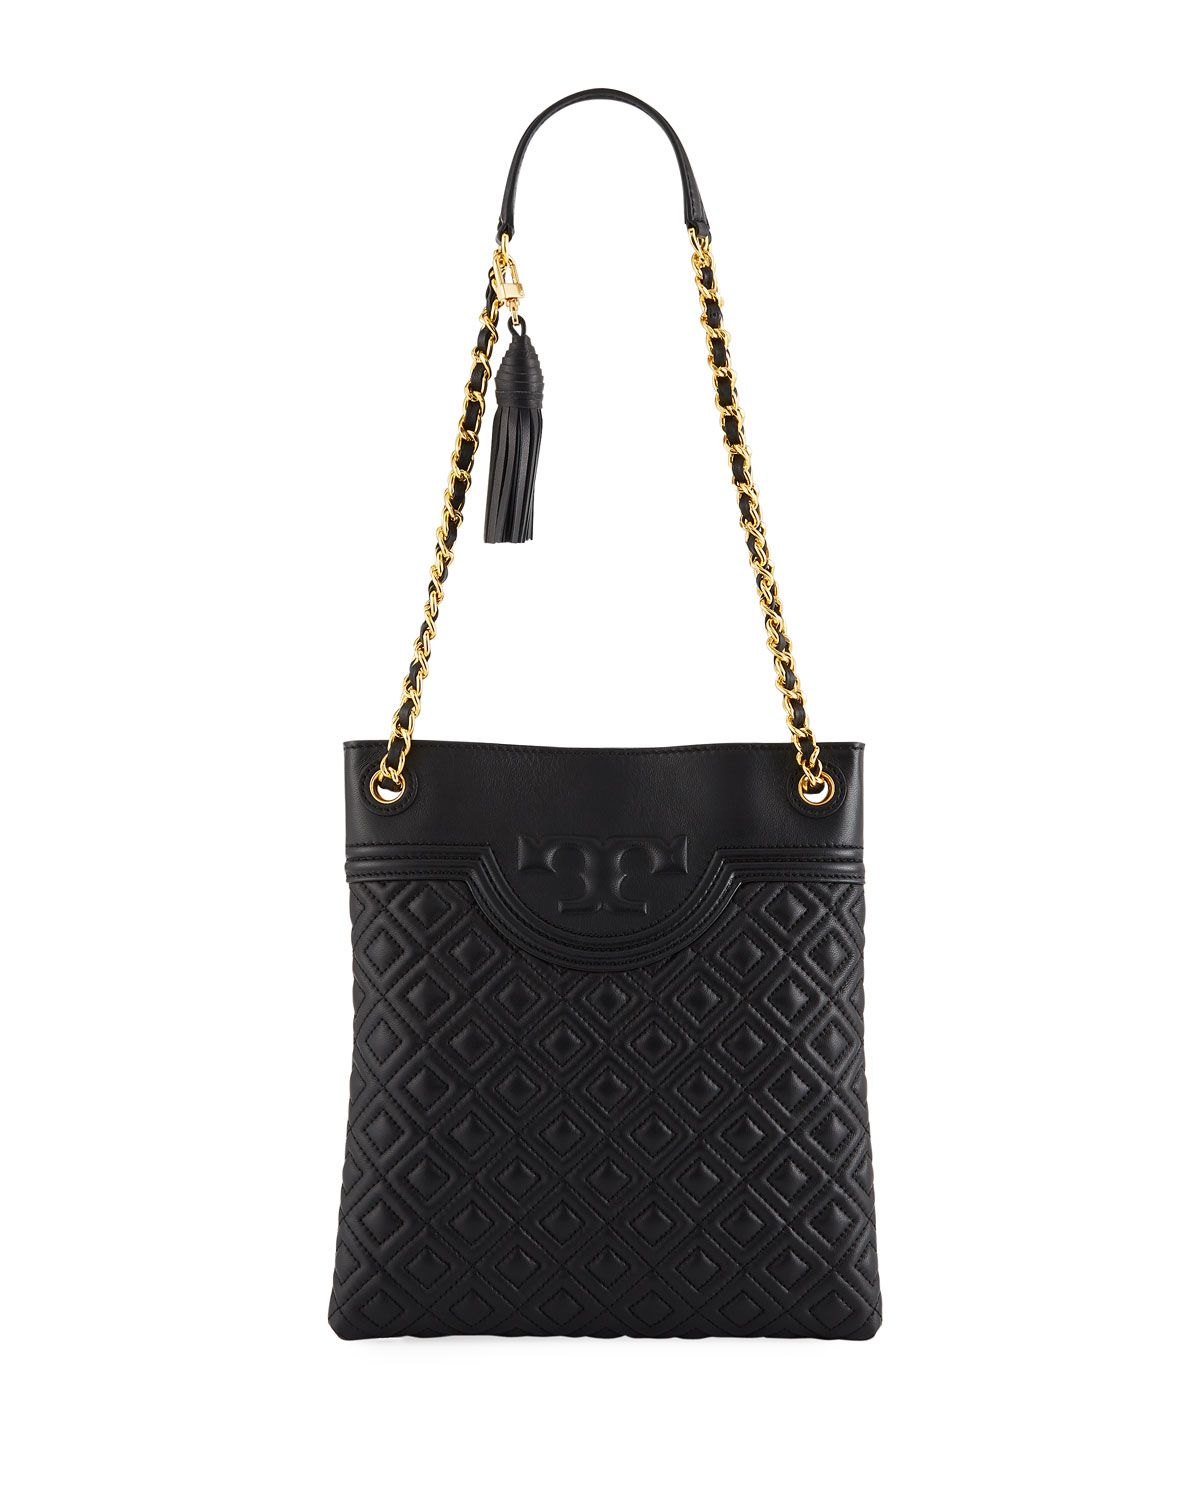 3ff64d57cd1 Tory Burch Fleming Diamond-Quilted Swing-Pack Tote Bag - Brass Hardware |  Tory